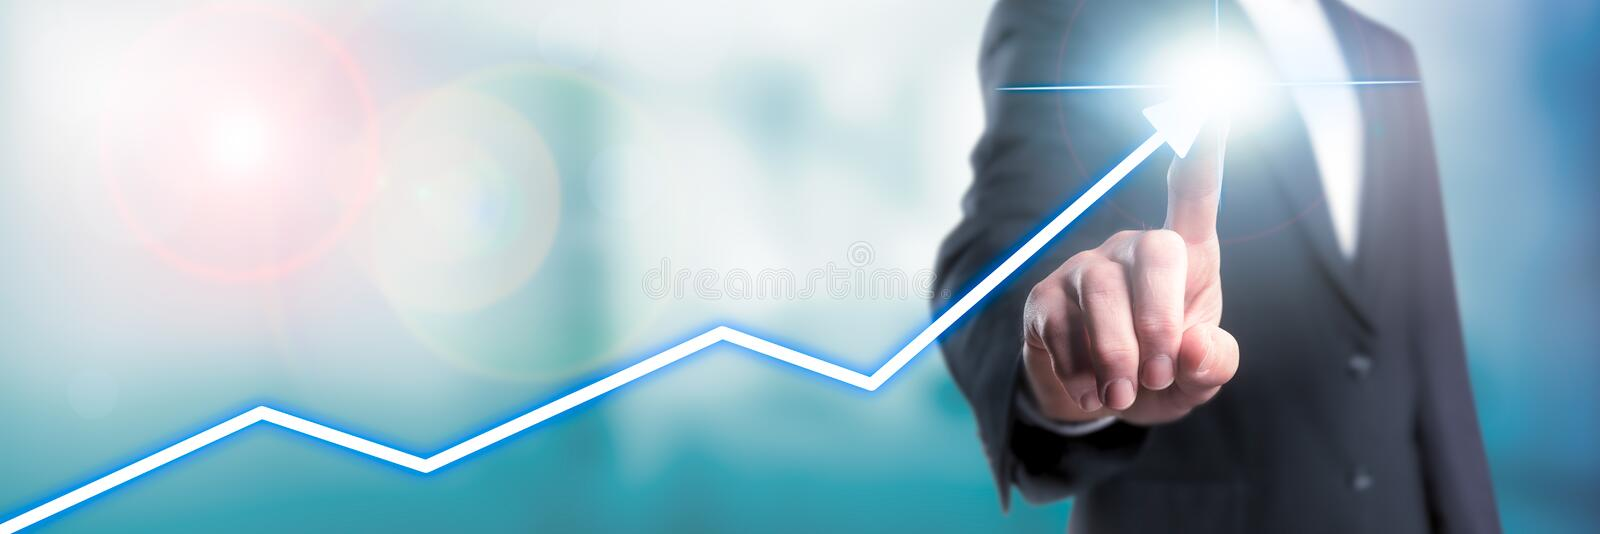 Growing Your Business stock photo